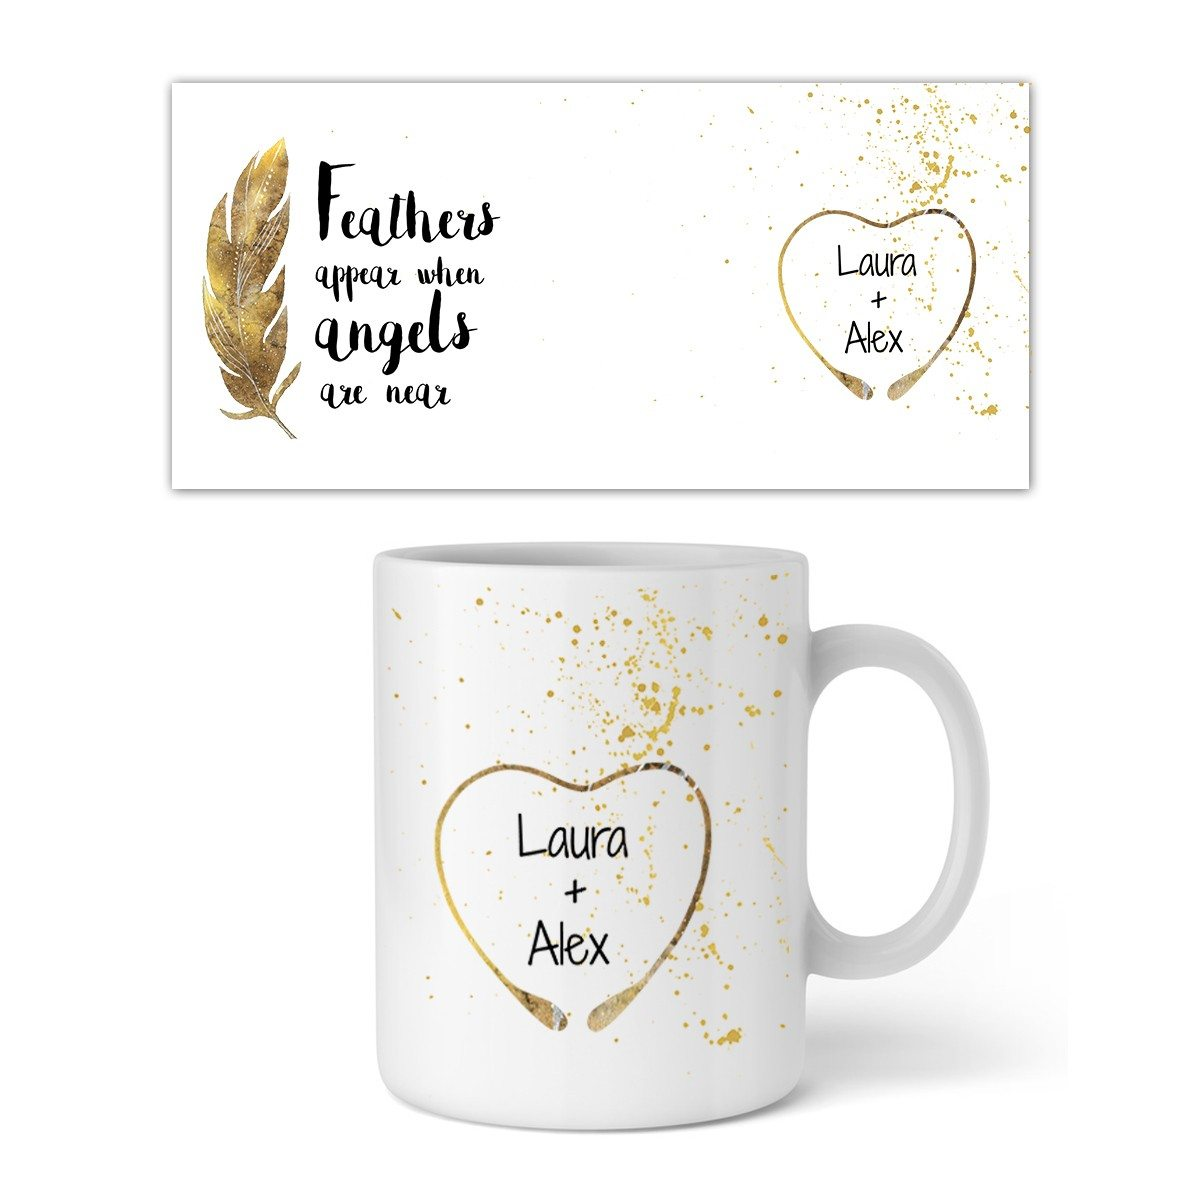 PERSONALISIERBARE TASSE - FEATHERS APPEAR